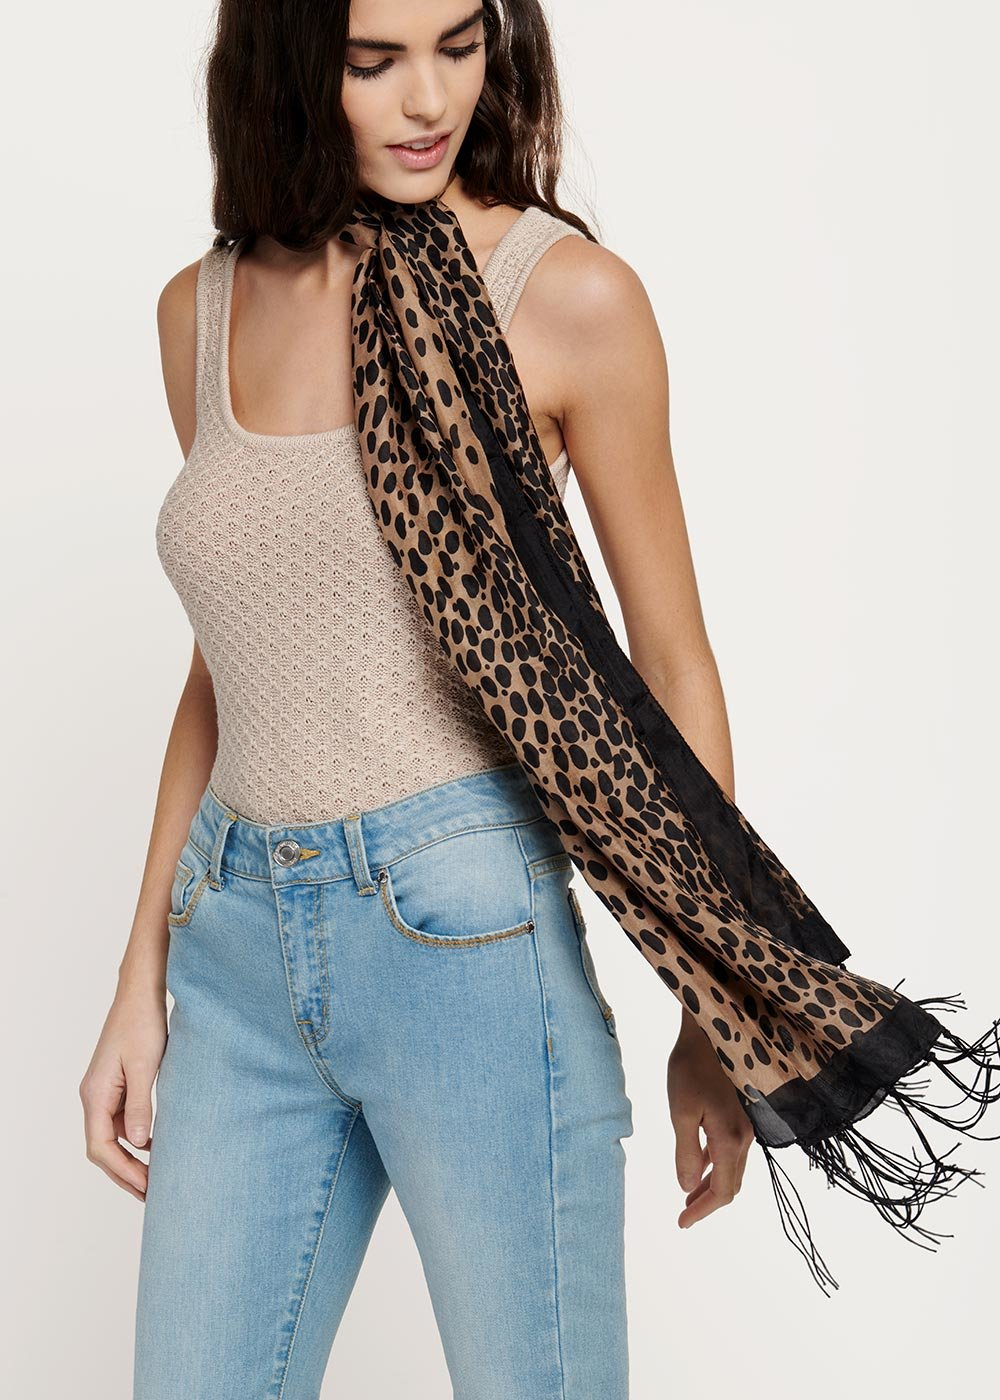 Seraphy animal print scarf with fringes